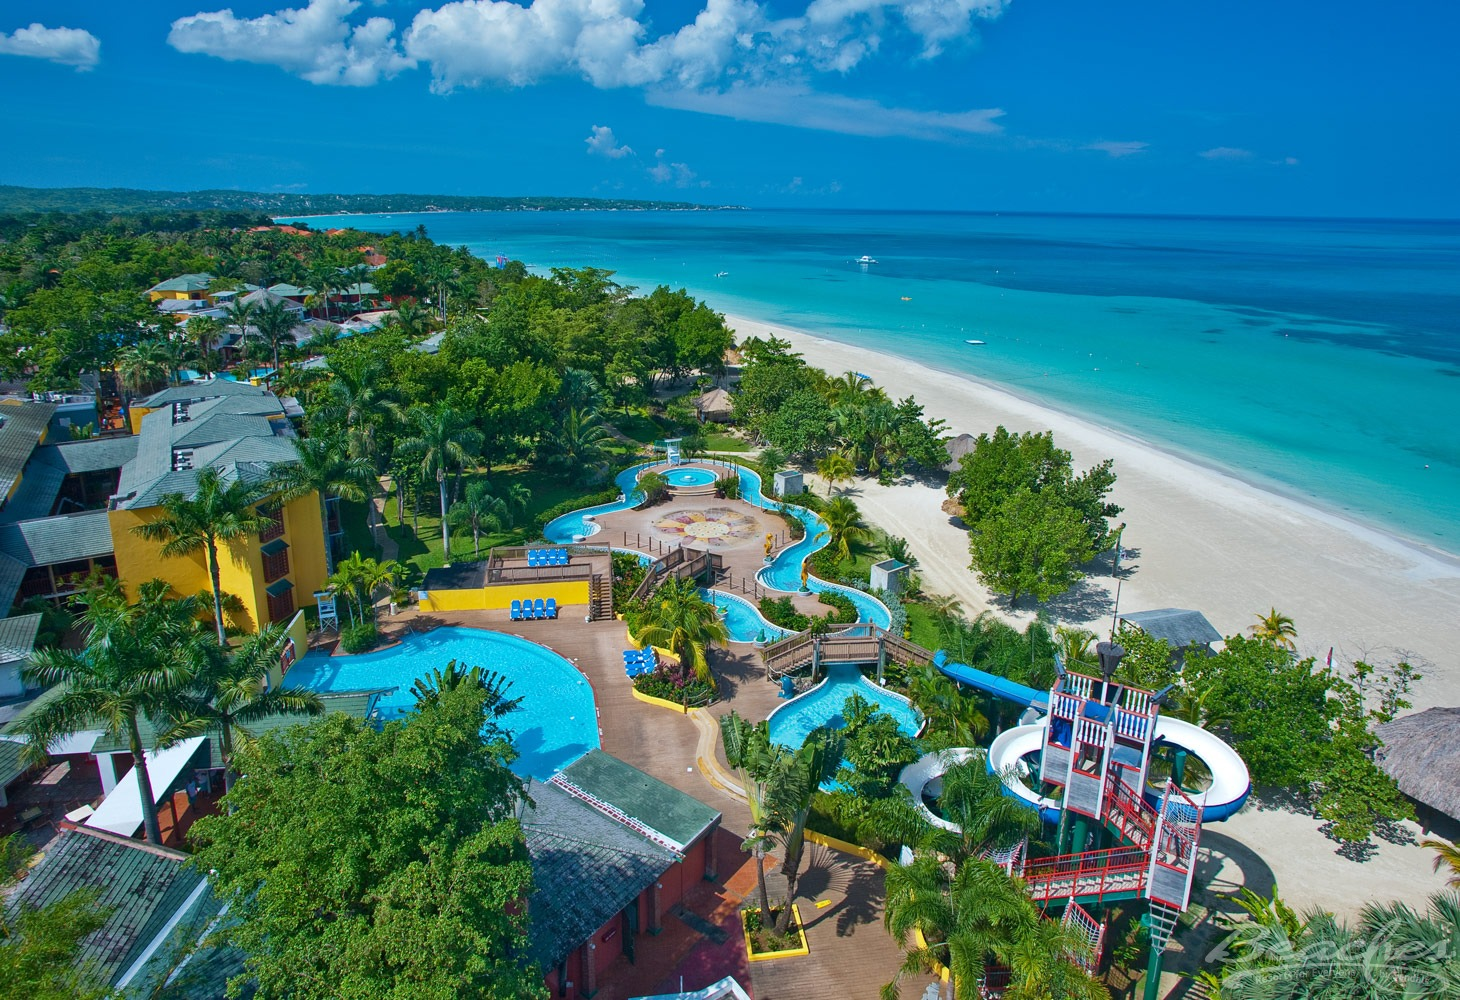 Beaches Negril Resort & Spa aerial view of beach and water park